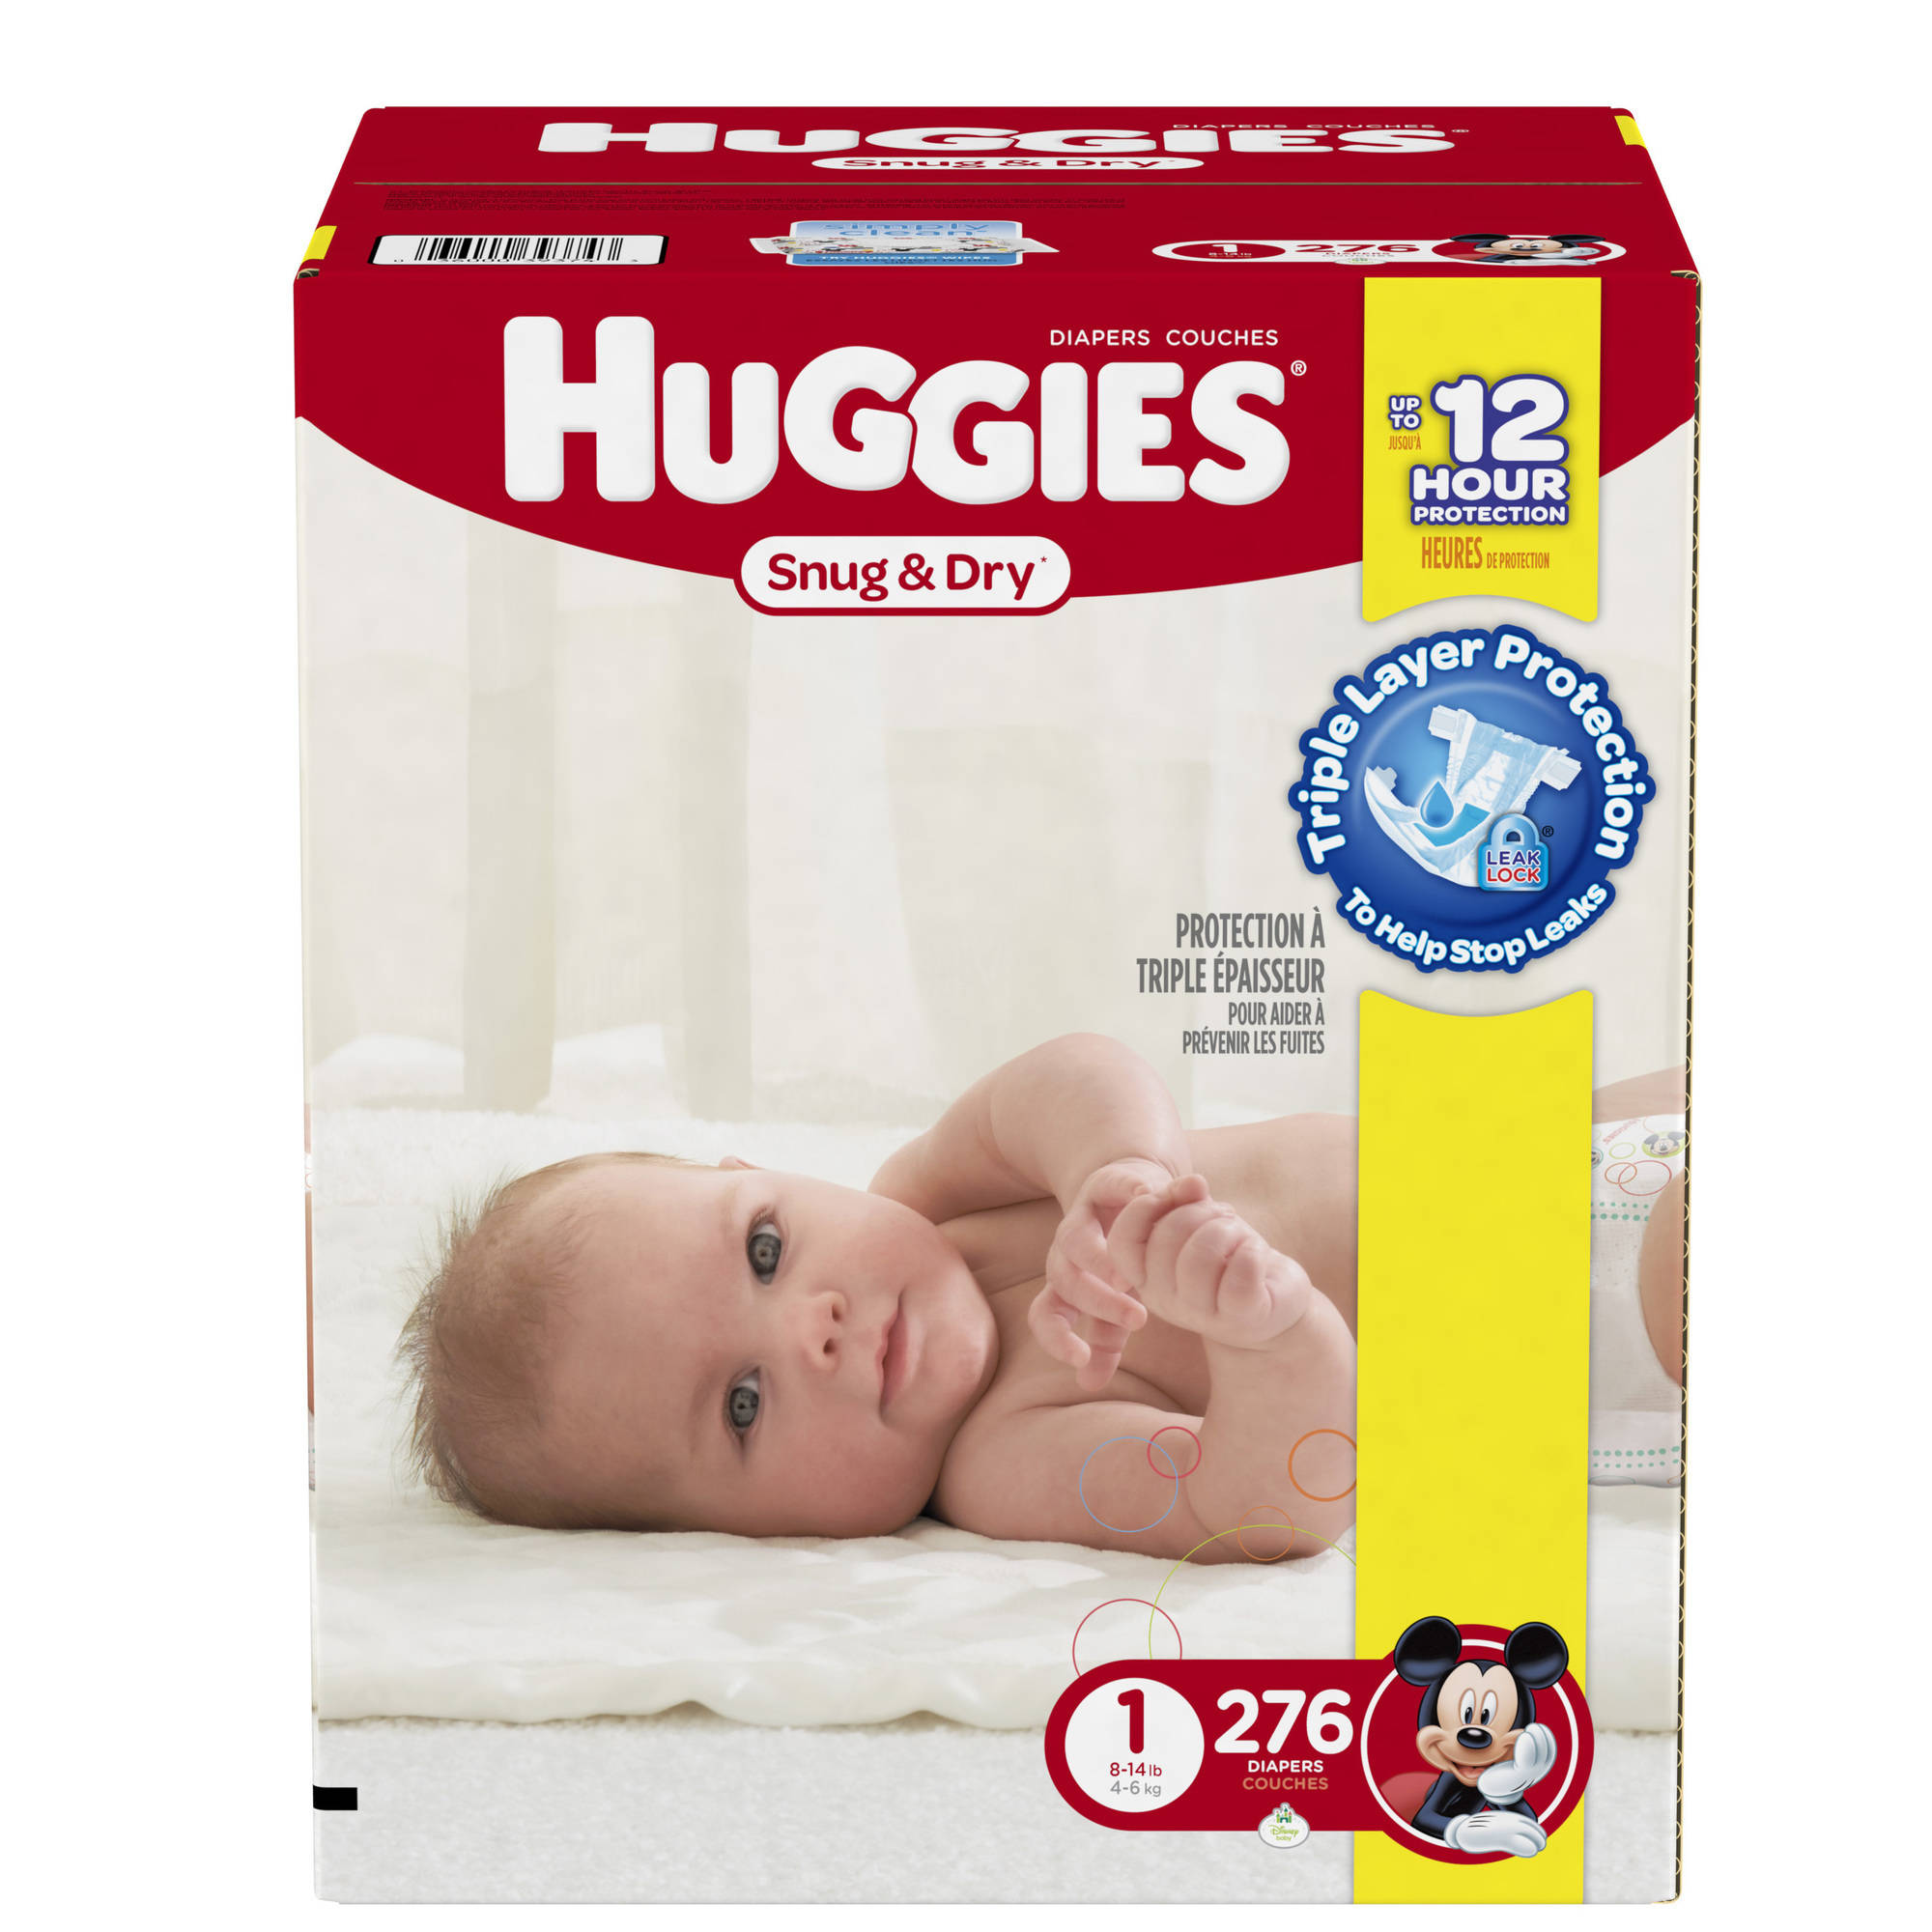 HUGGIES Snug & Dry Diapers, Size 1, 276 Diapers